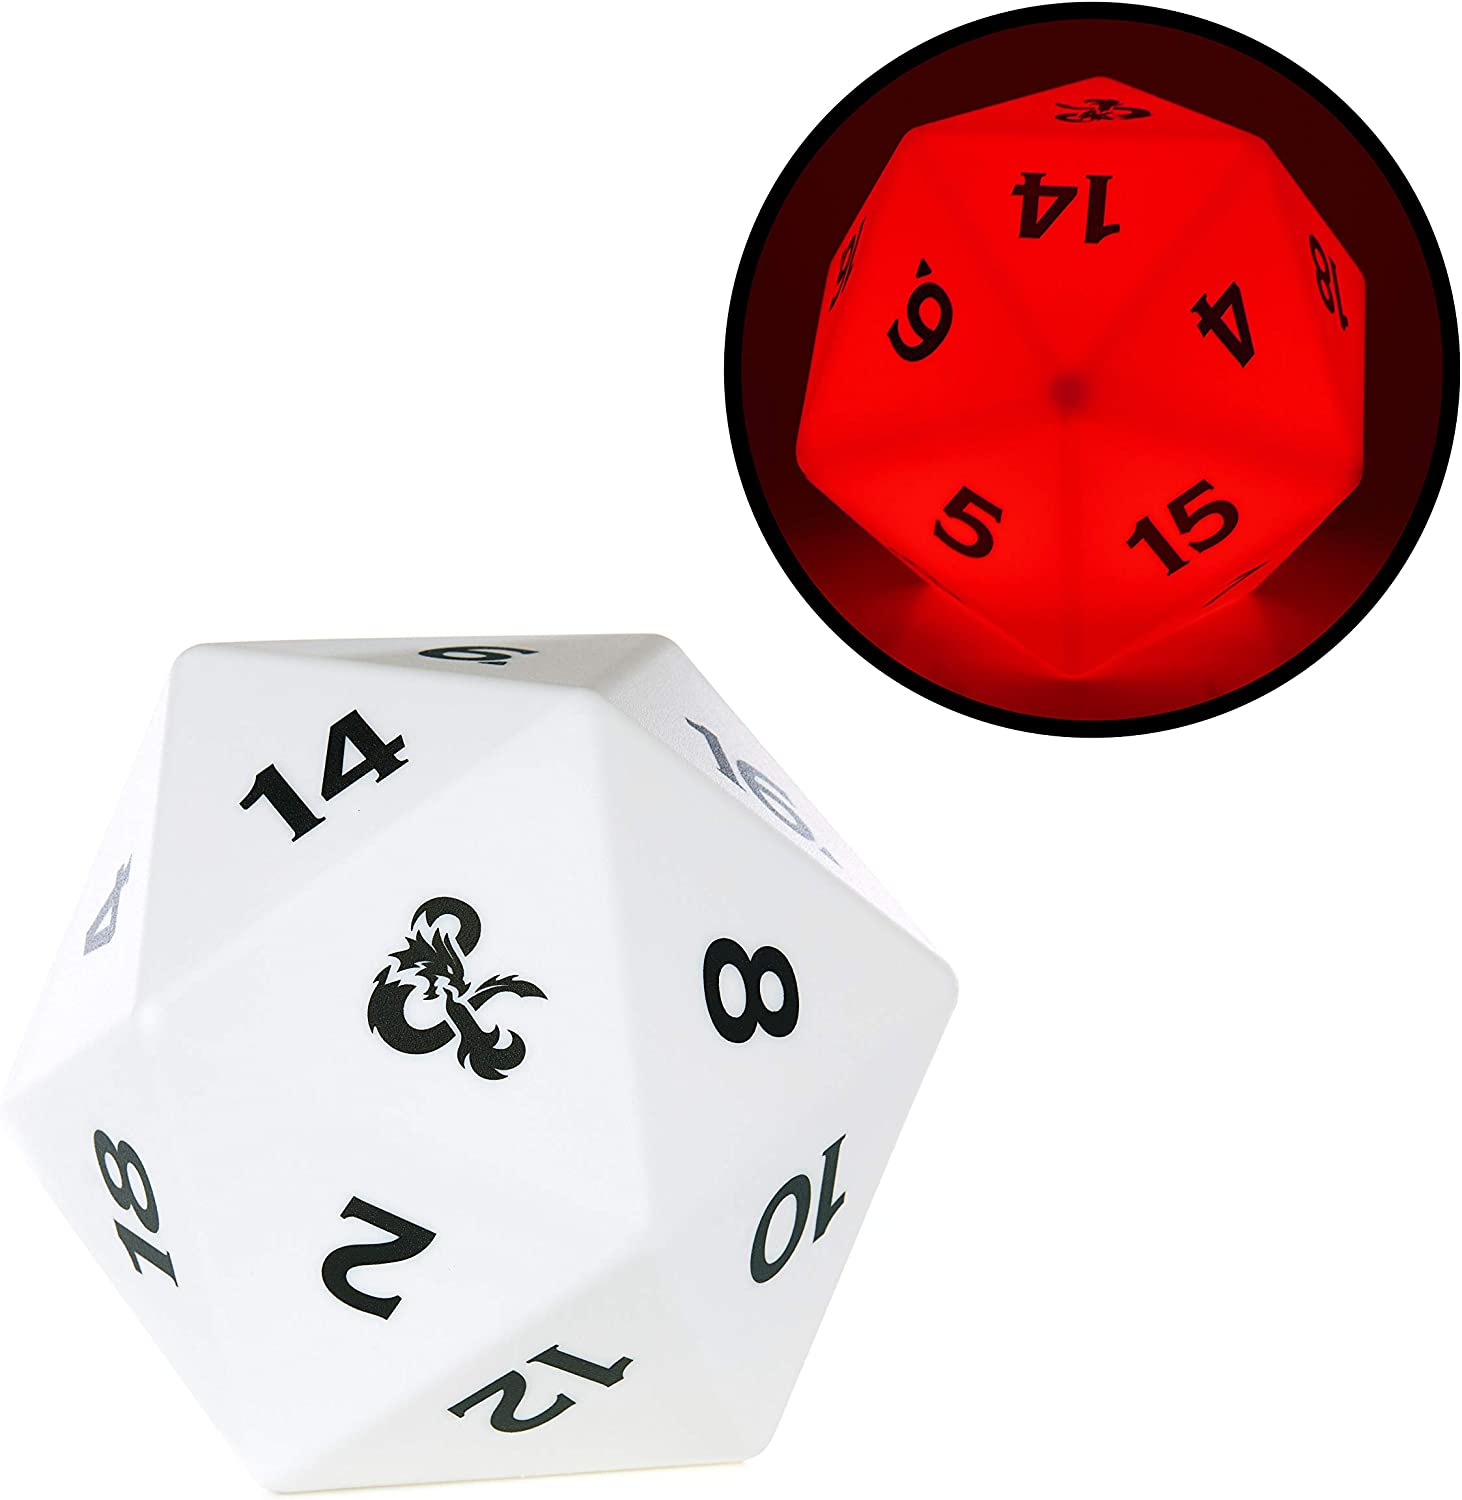 Dungeons and Dragons D20 Color Changing Light - Officially Licensed Wizards of The Coast Merchandise